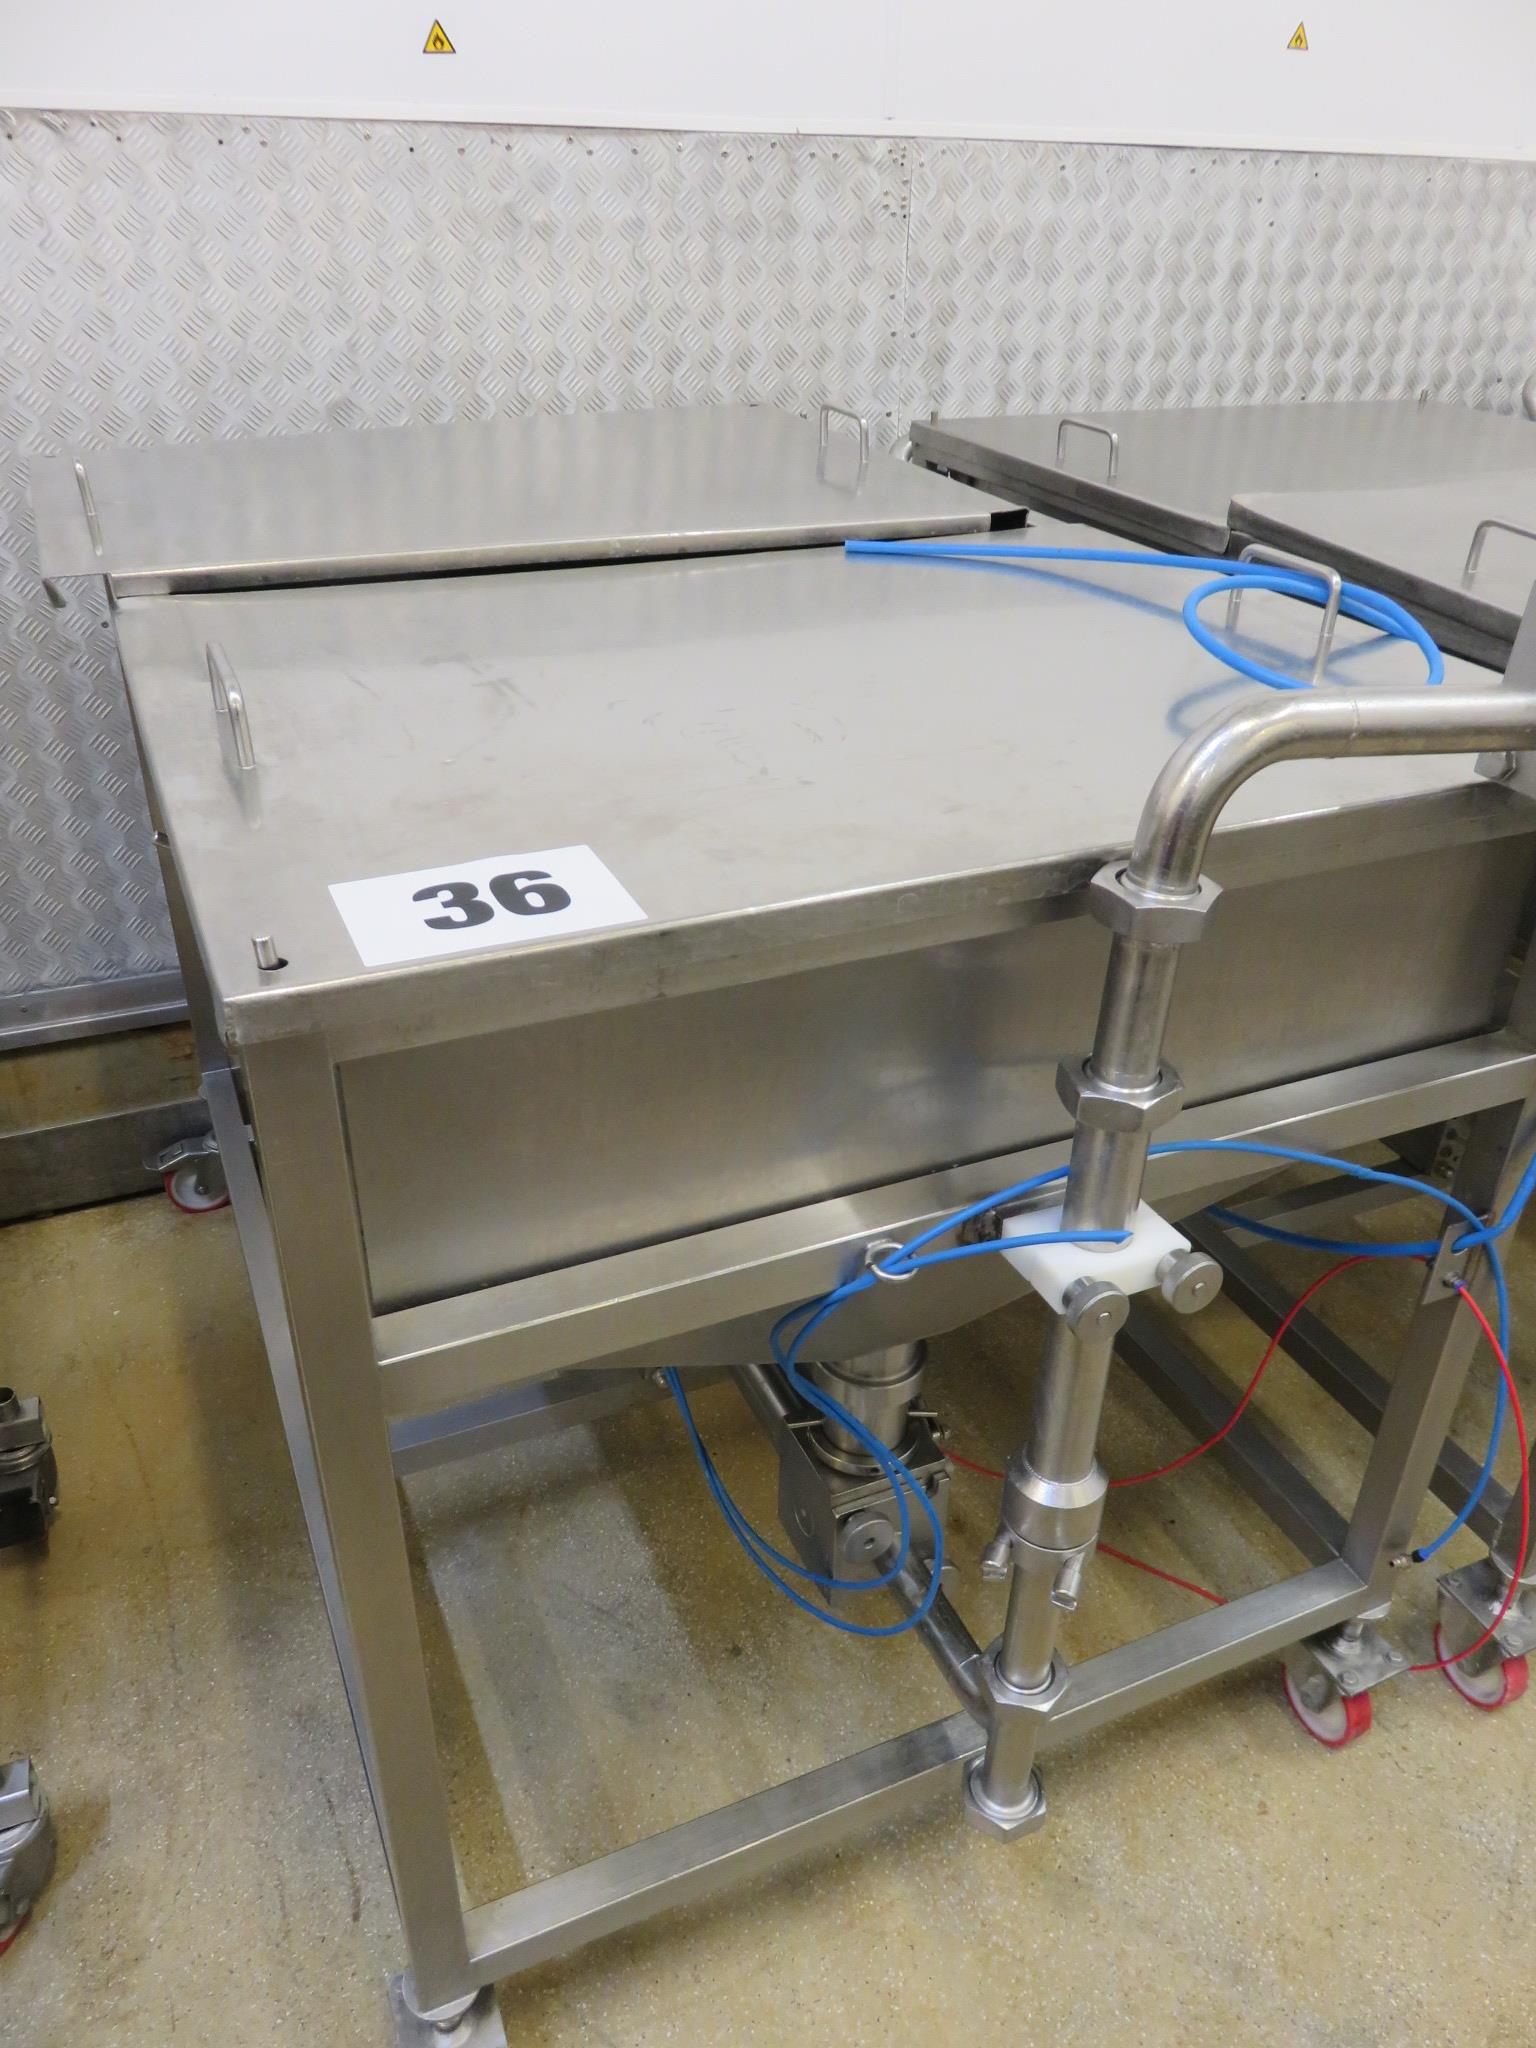 Lot 36 - Apple Depositor Model MR900, Low Level. Hopper 1400 x 950 x 500 mm deep. Mobile on whe. Lift out £35